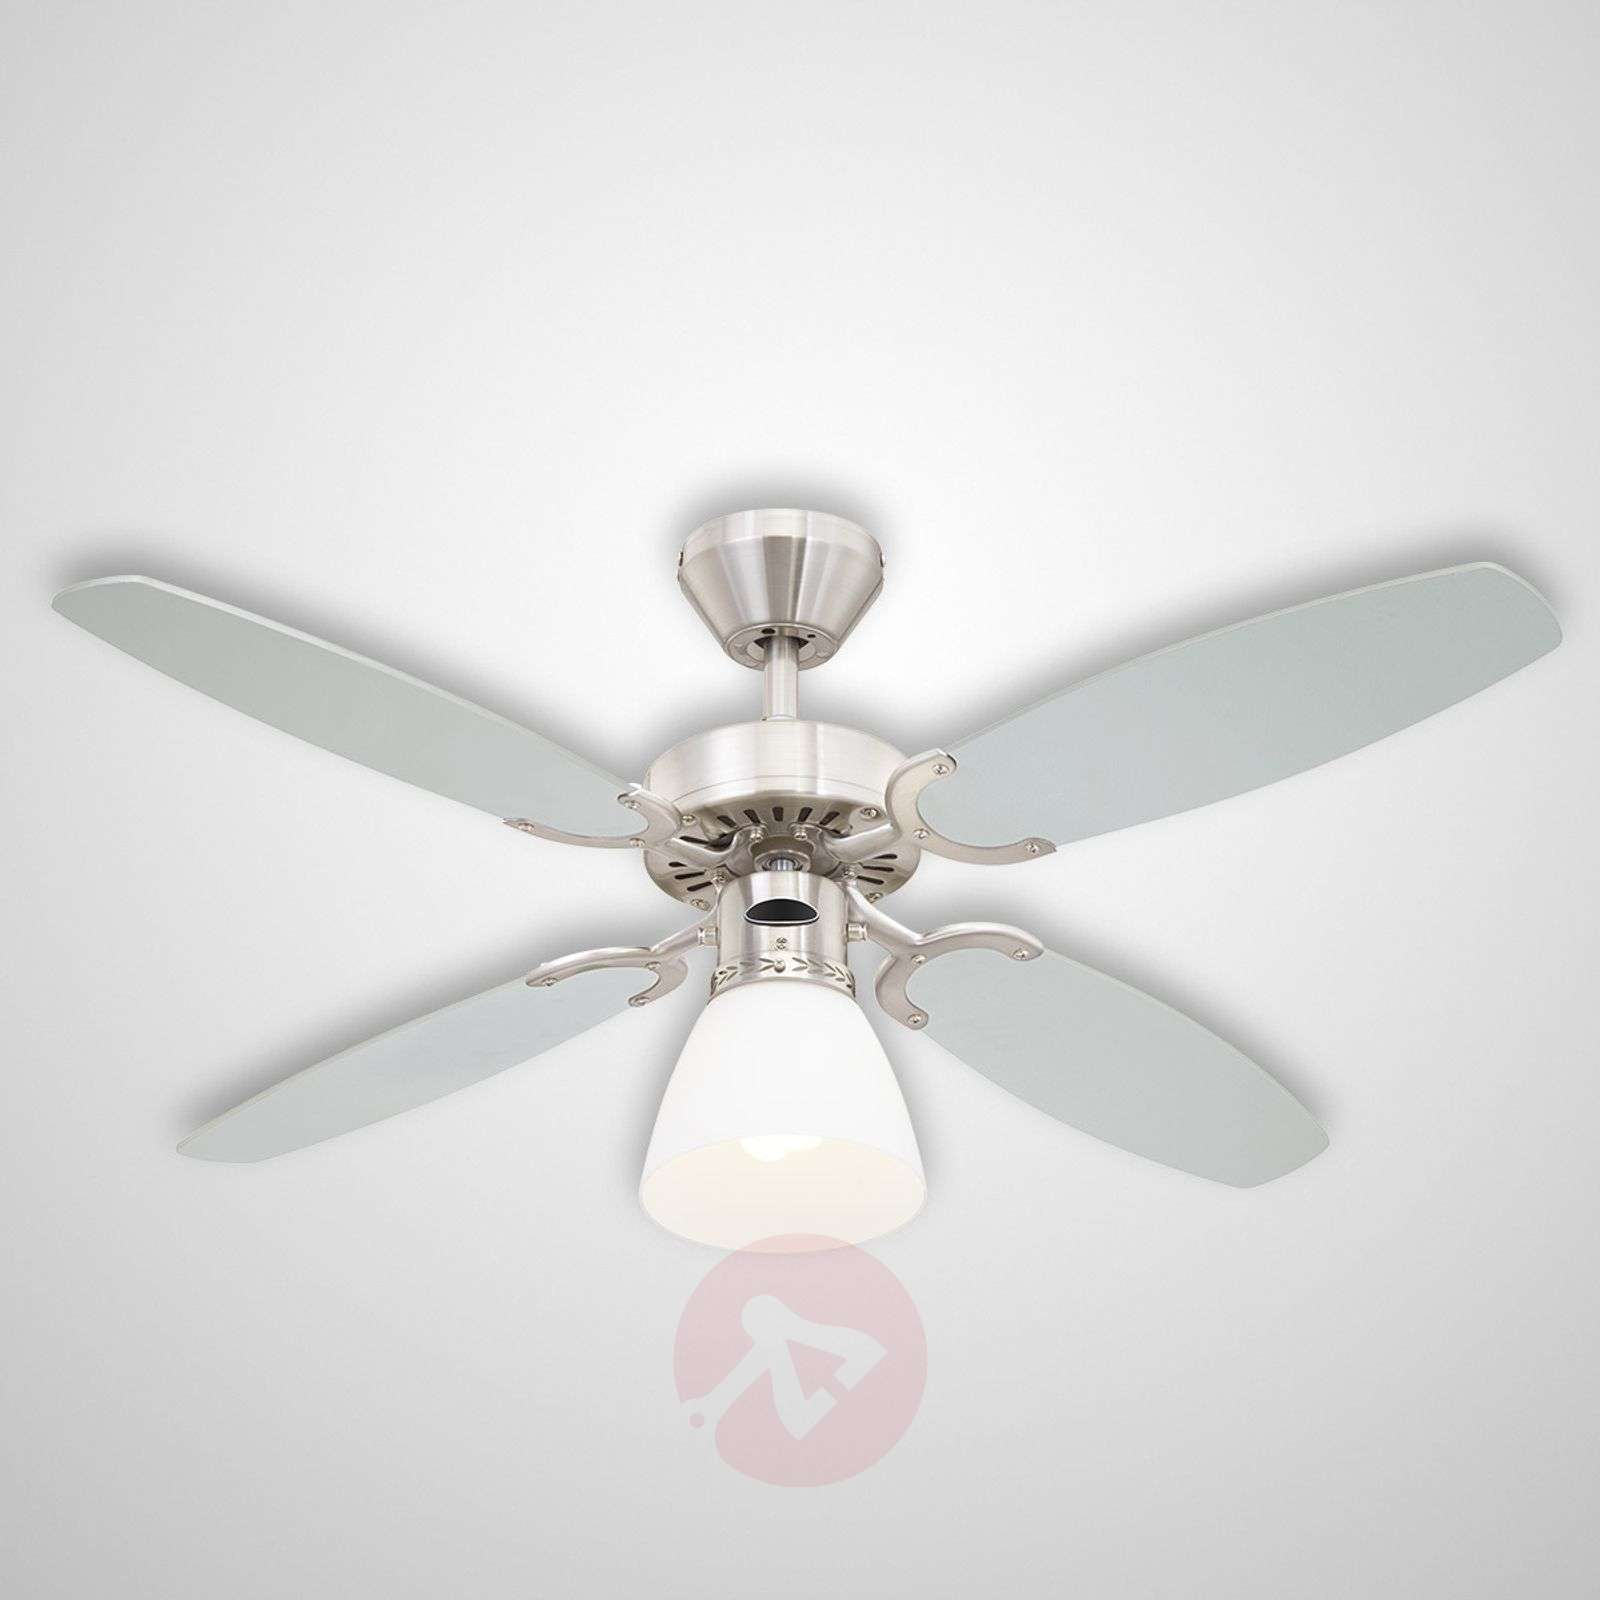 Capitol ceiling fan with light bulb lights capitol ceiling fan with light bulb 9602269 01 aloadofball Choice Image